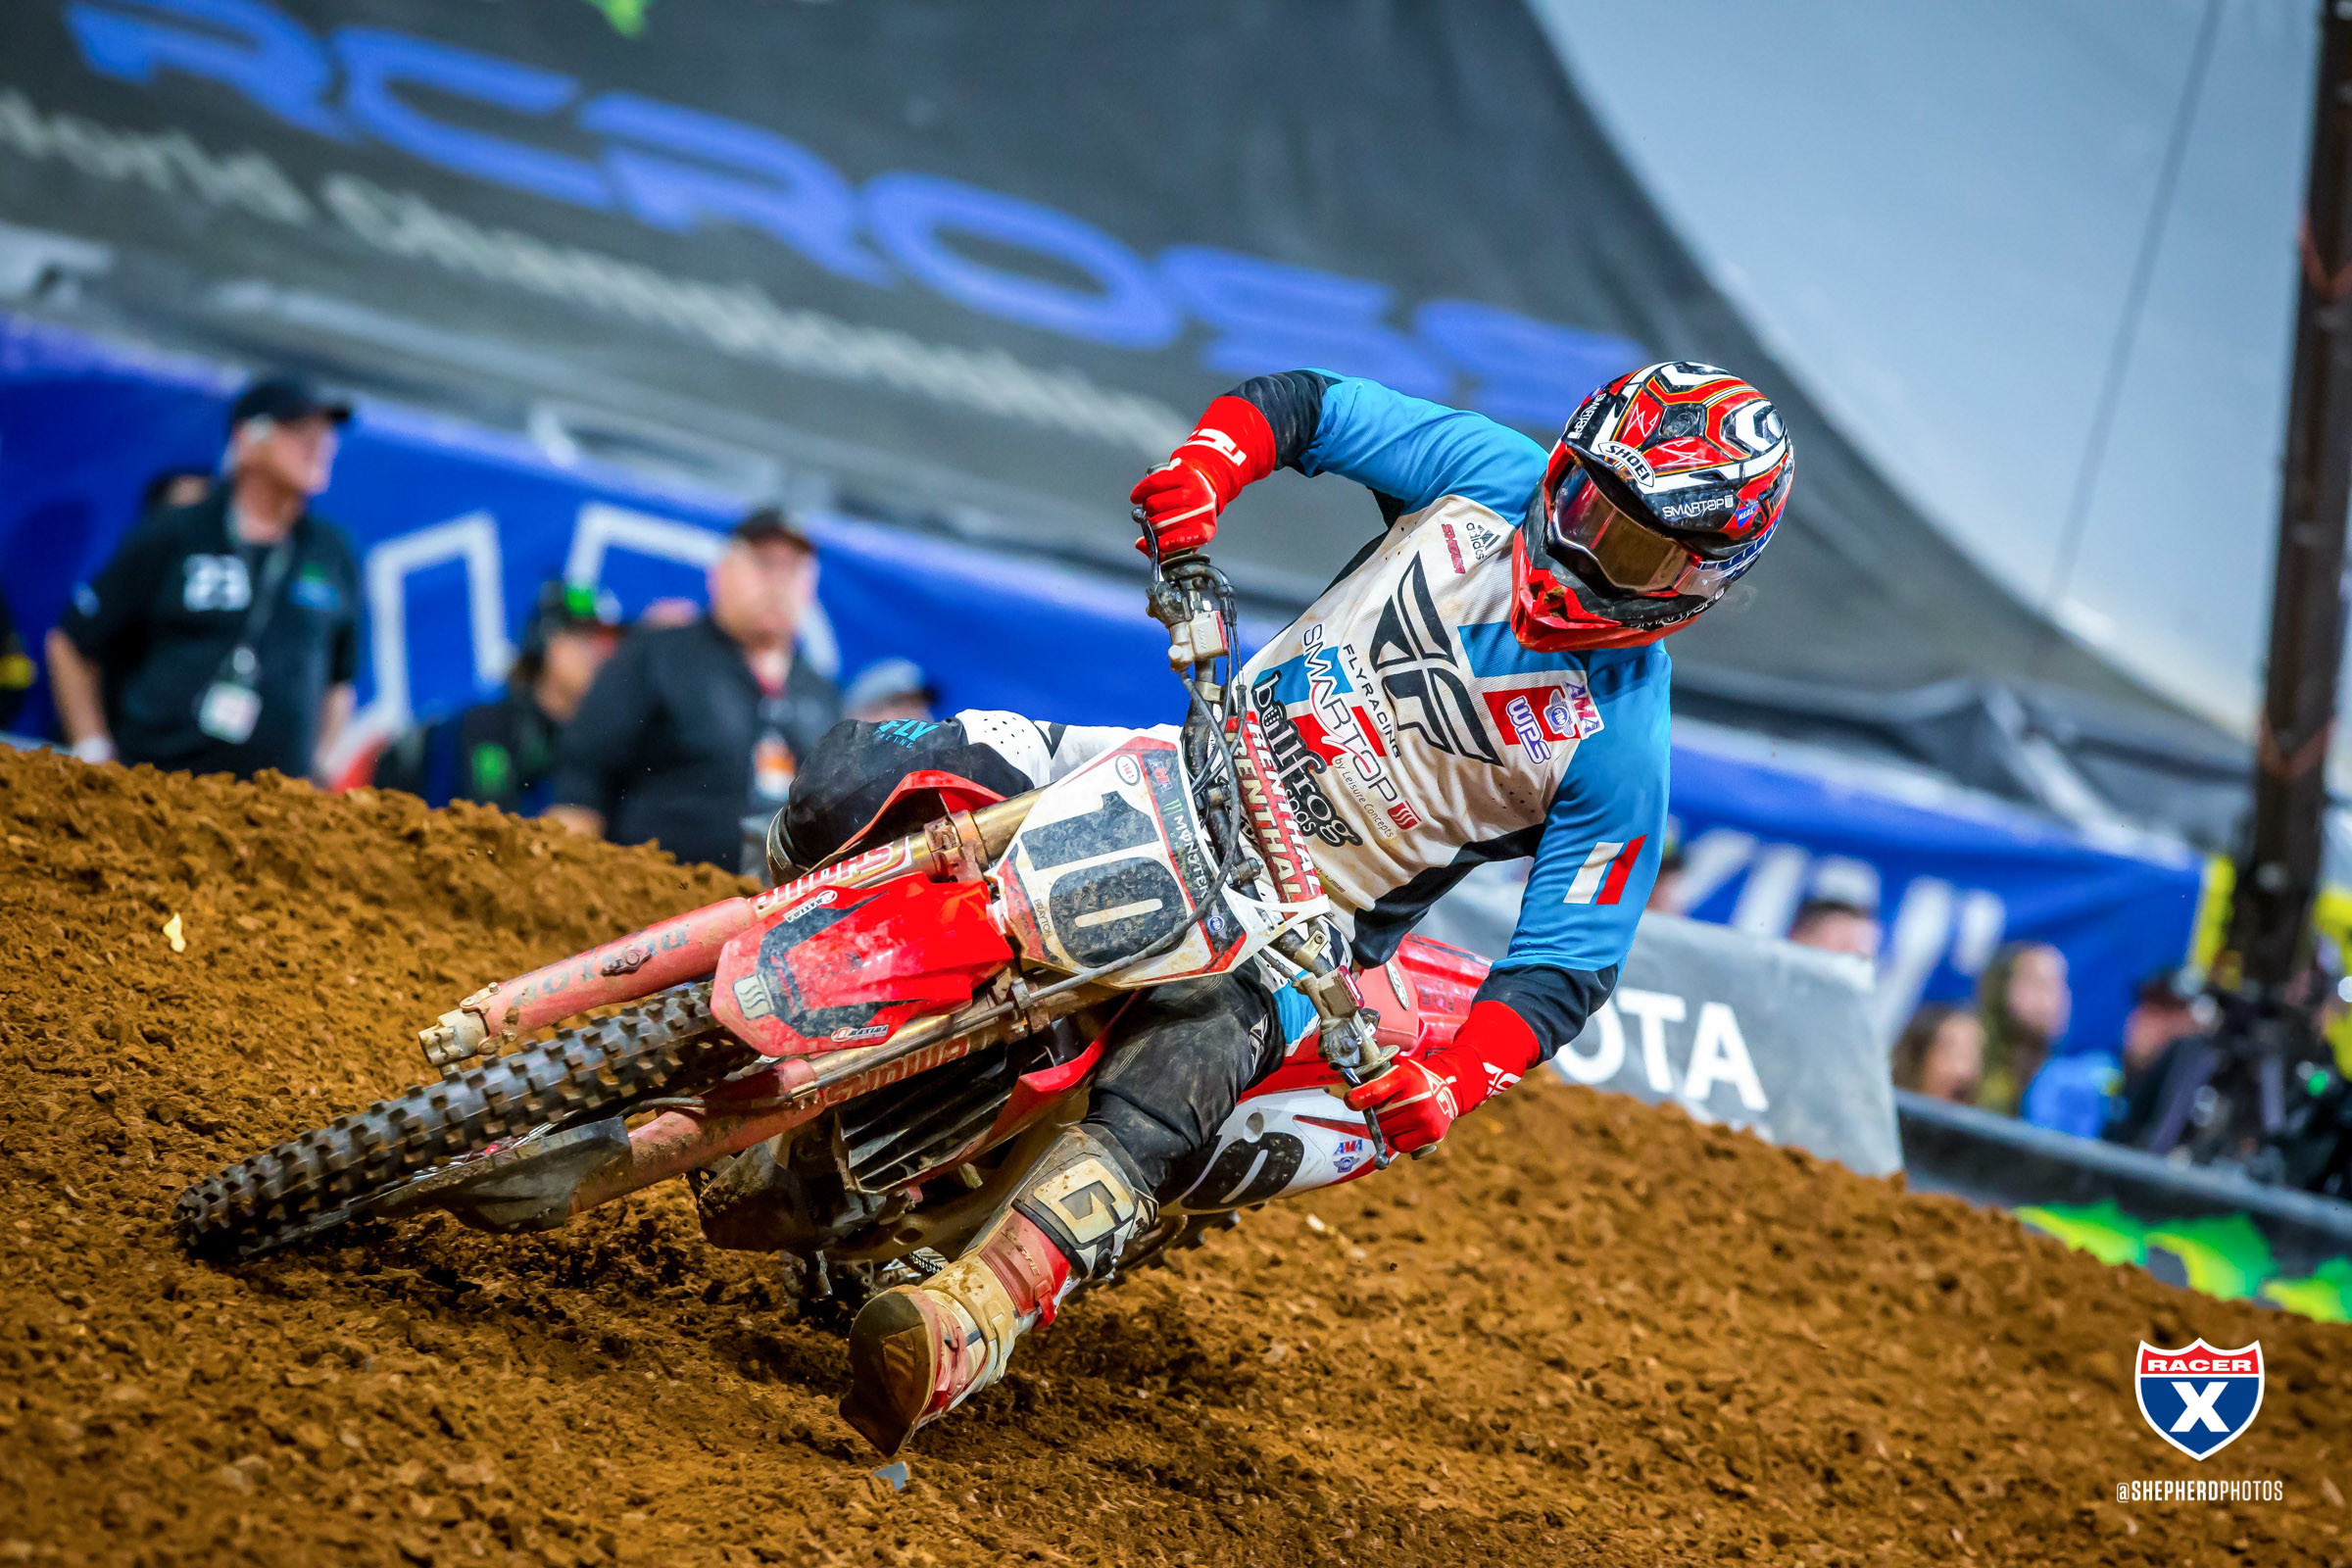 Brayton_RS_SX19_Atlanta_006